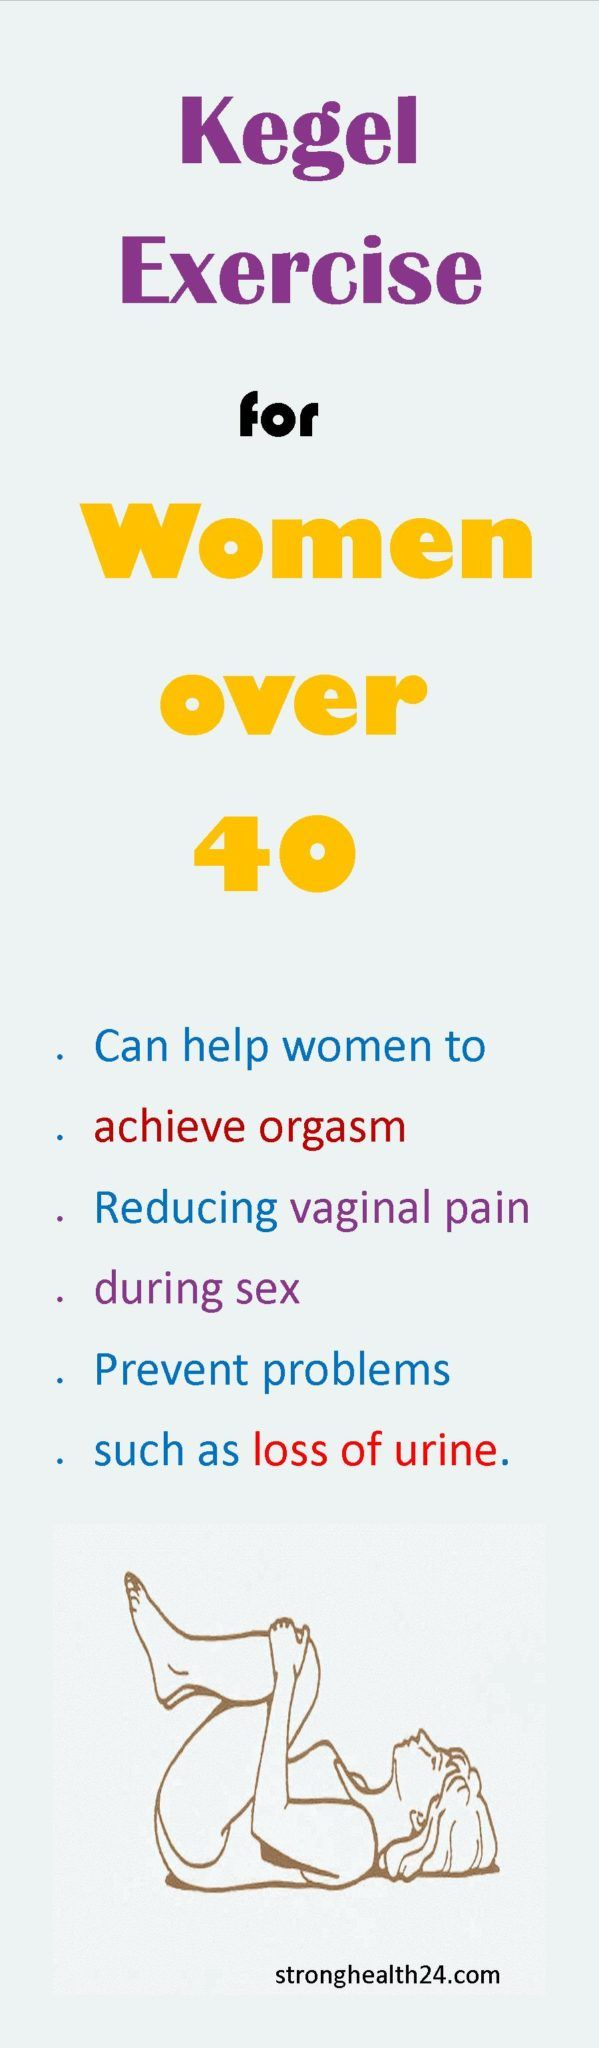 Benefits of Kegel Exercises in Women over 40  You know that once you reach menopause, the muscles weaken and this also happens to your pelvic muscles, which can lead to serious and uncomfortable problems such as loss of urine.It is never too late to start performing the Kegel exercises, they...